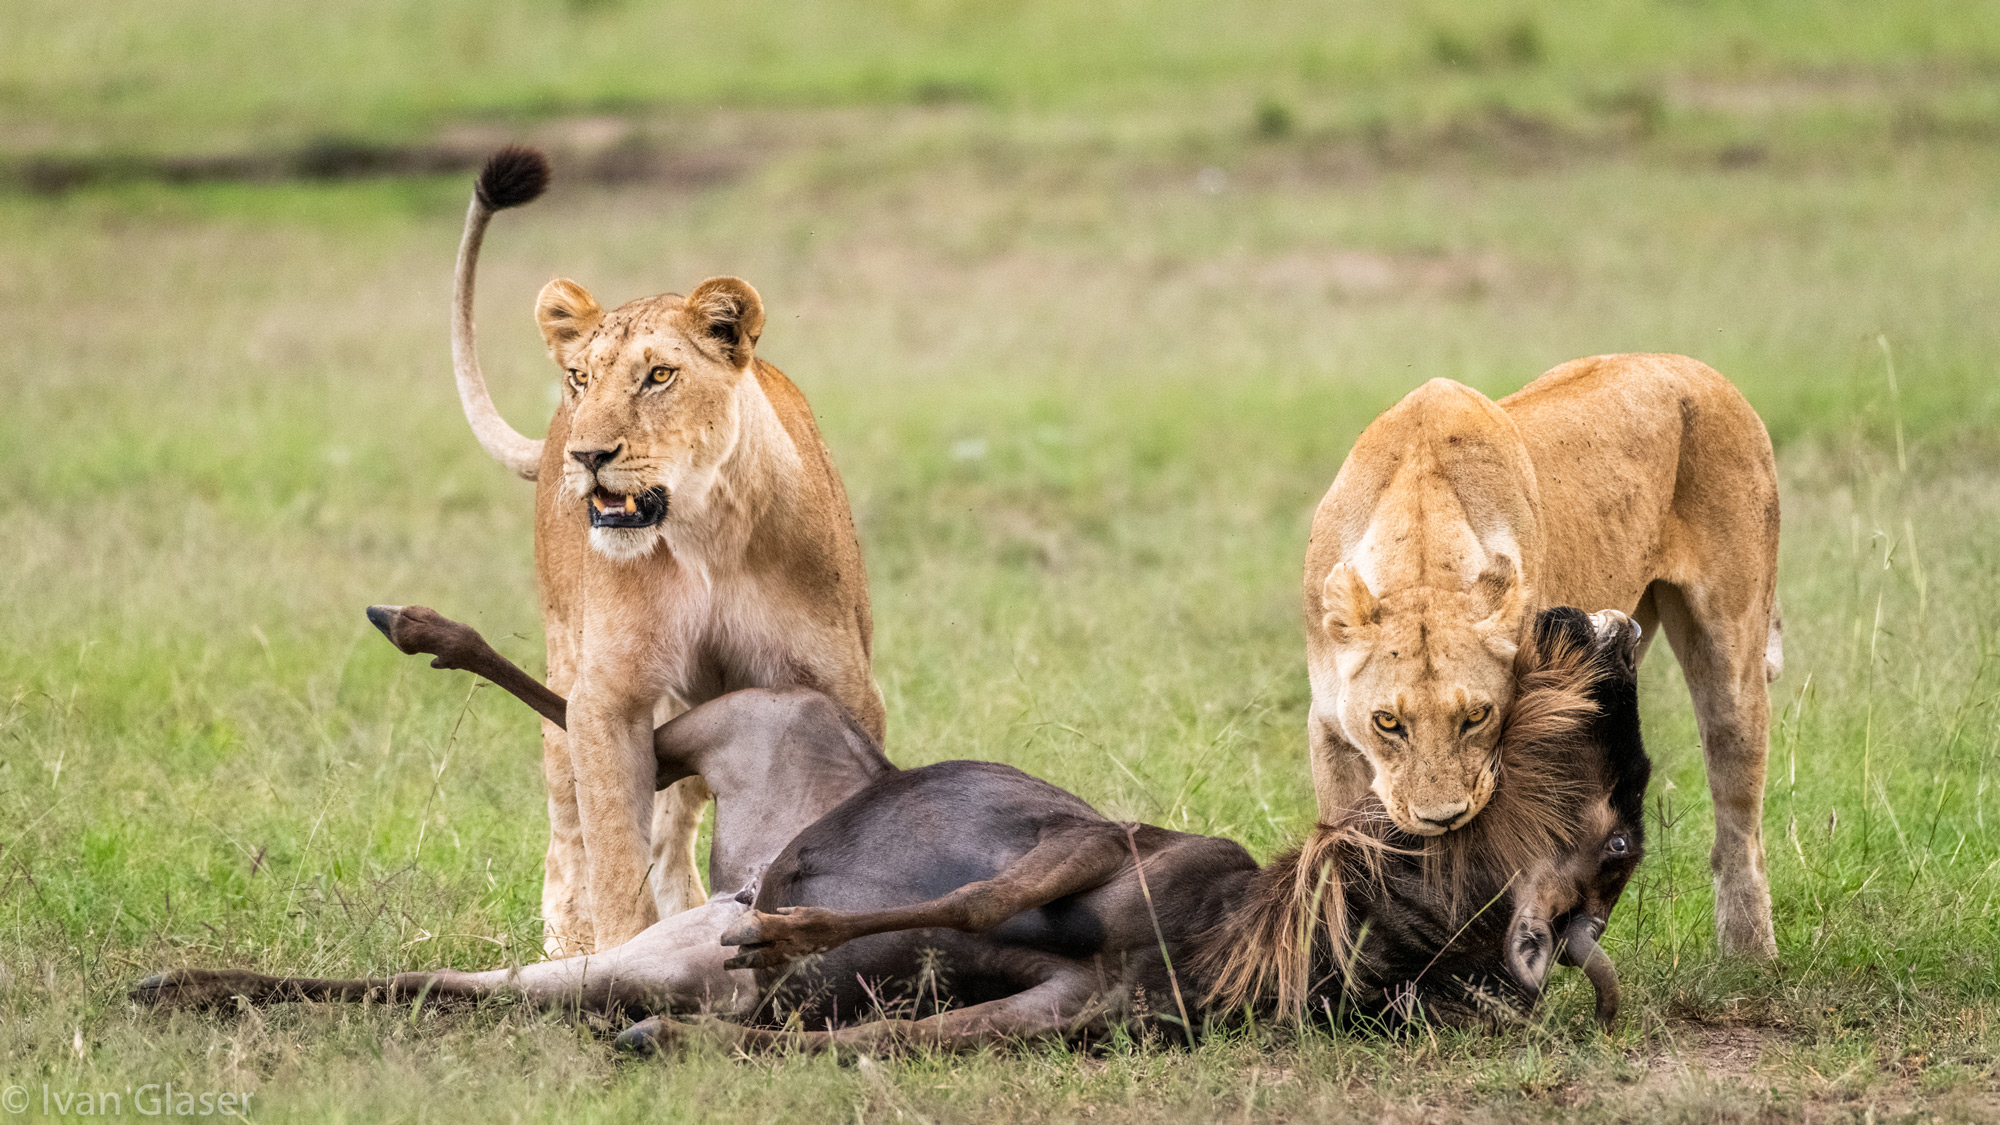 Lionesses with wildebeest kill in Maasai Mara